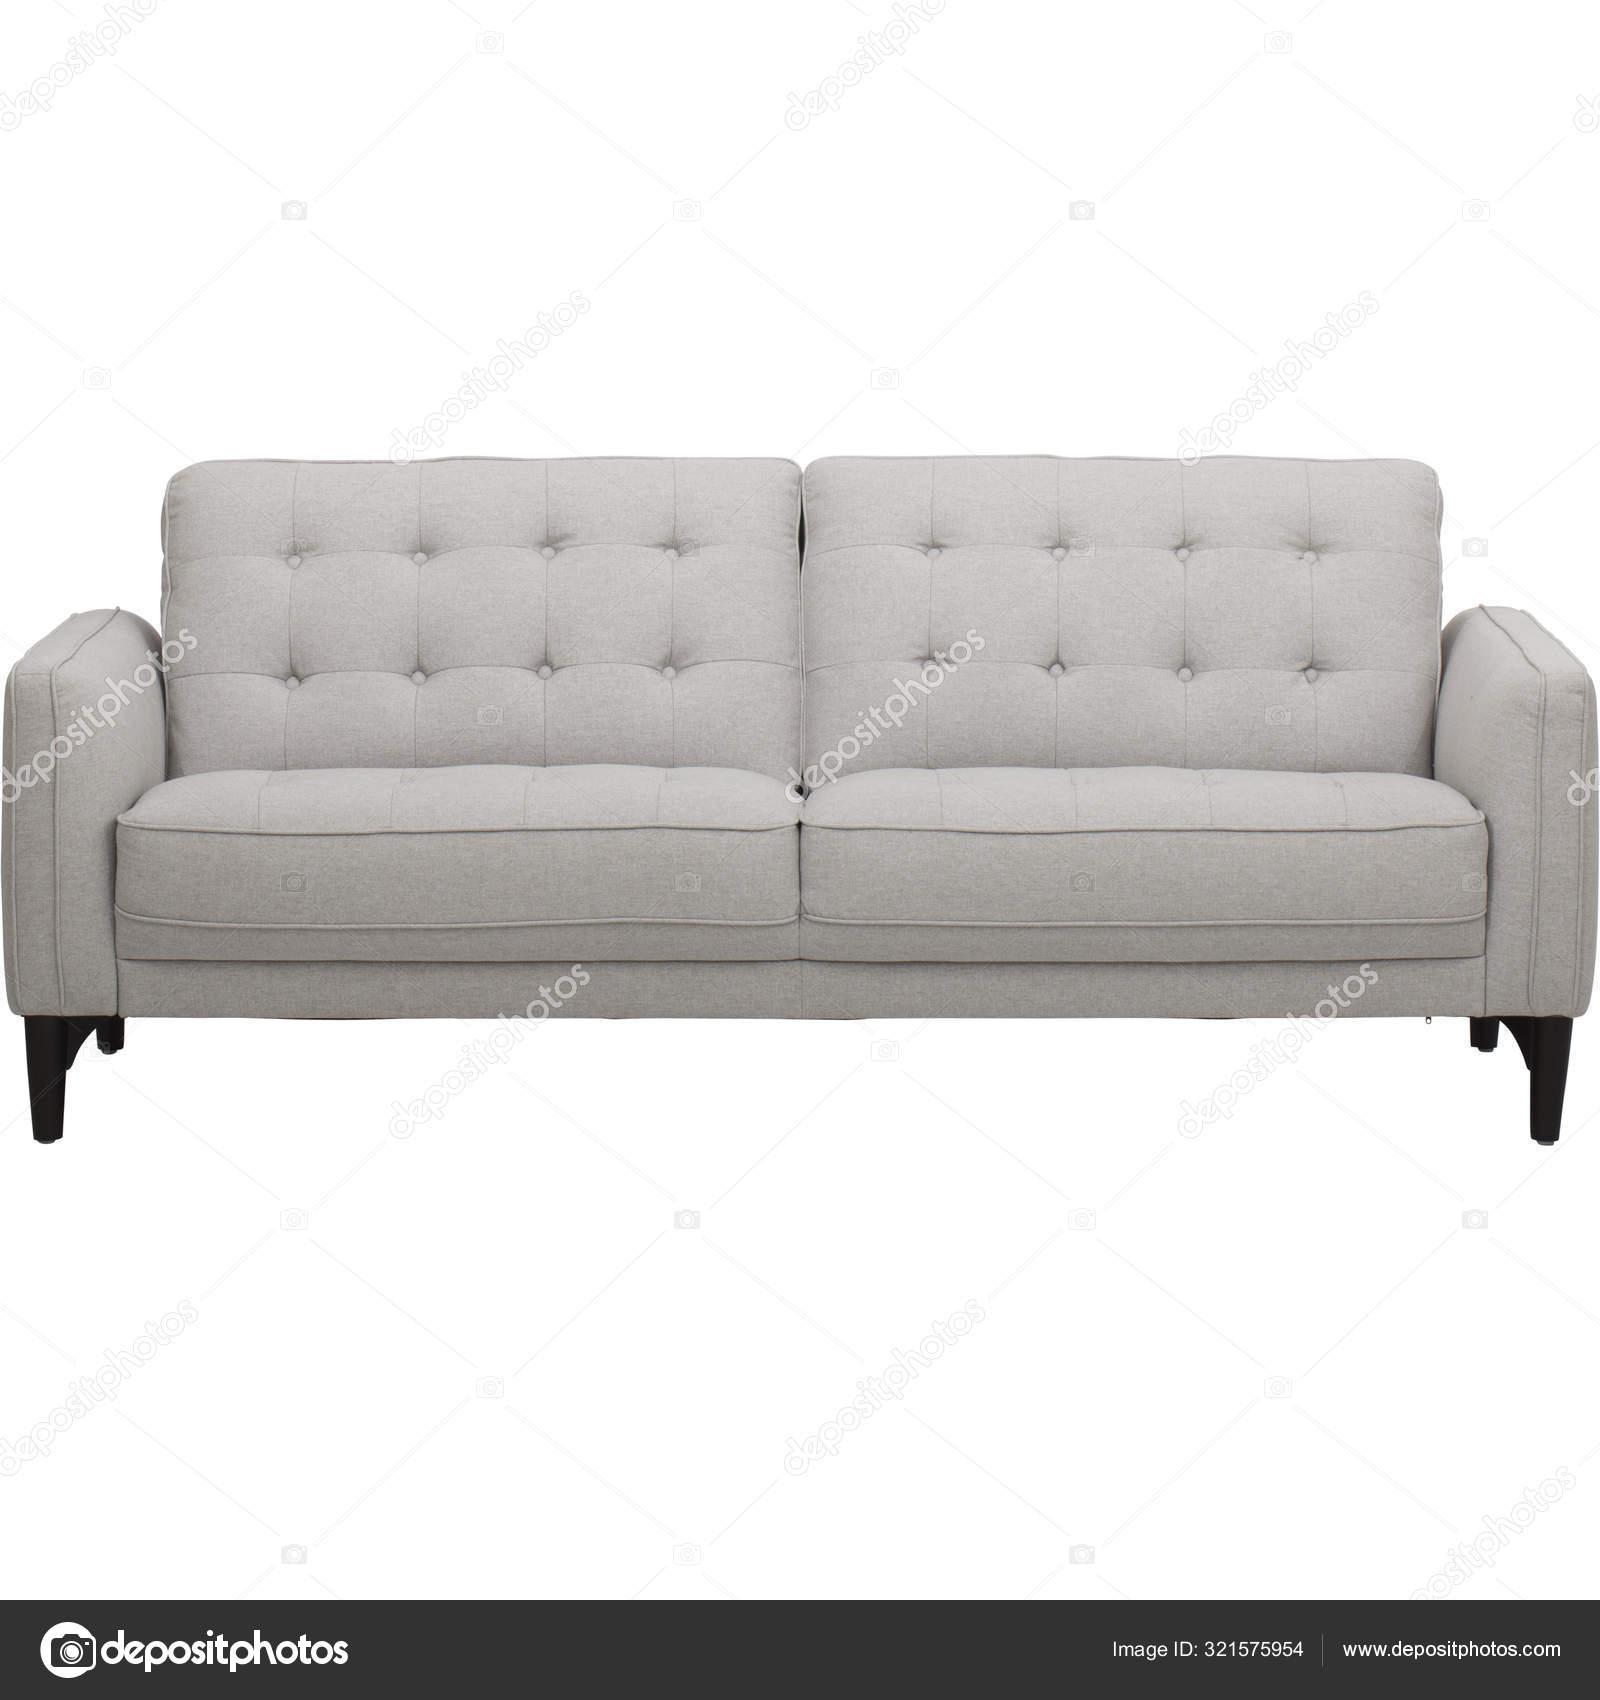 Full Size Of Chair Stunning Sectional Couches With Recliners Sofa Recliner And Chaise Lounge Compelling White Two Seater Sofa White Two Seater Couch Stock Photo Image By Jassdhiman 321575954